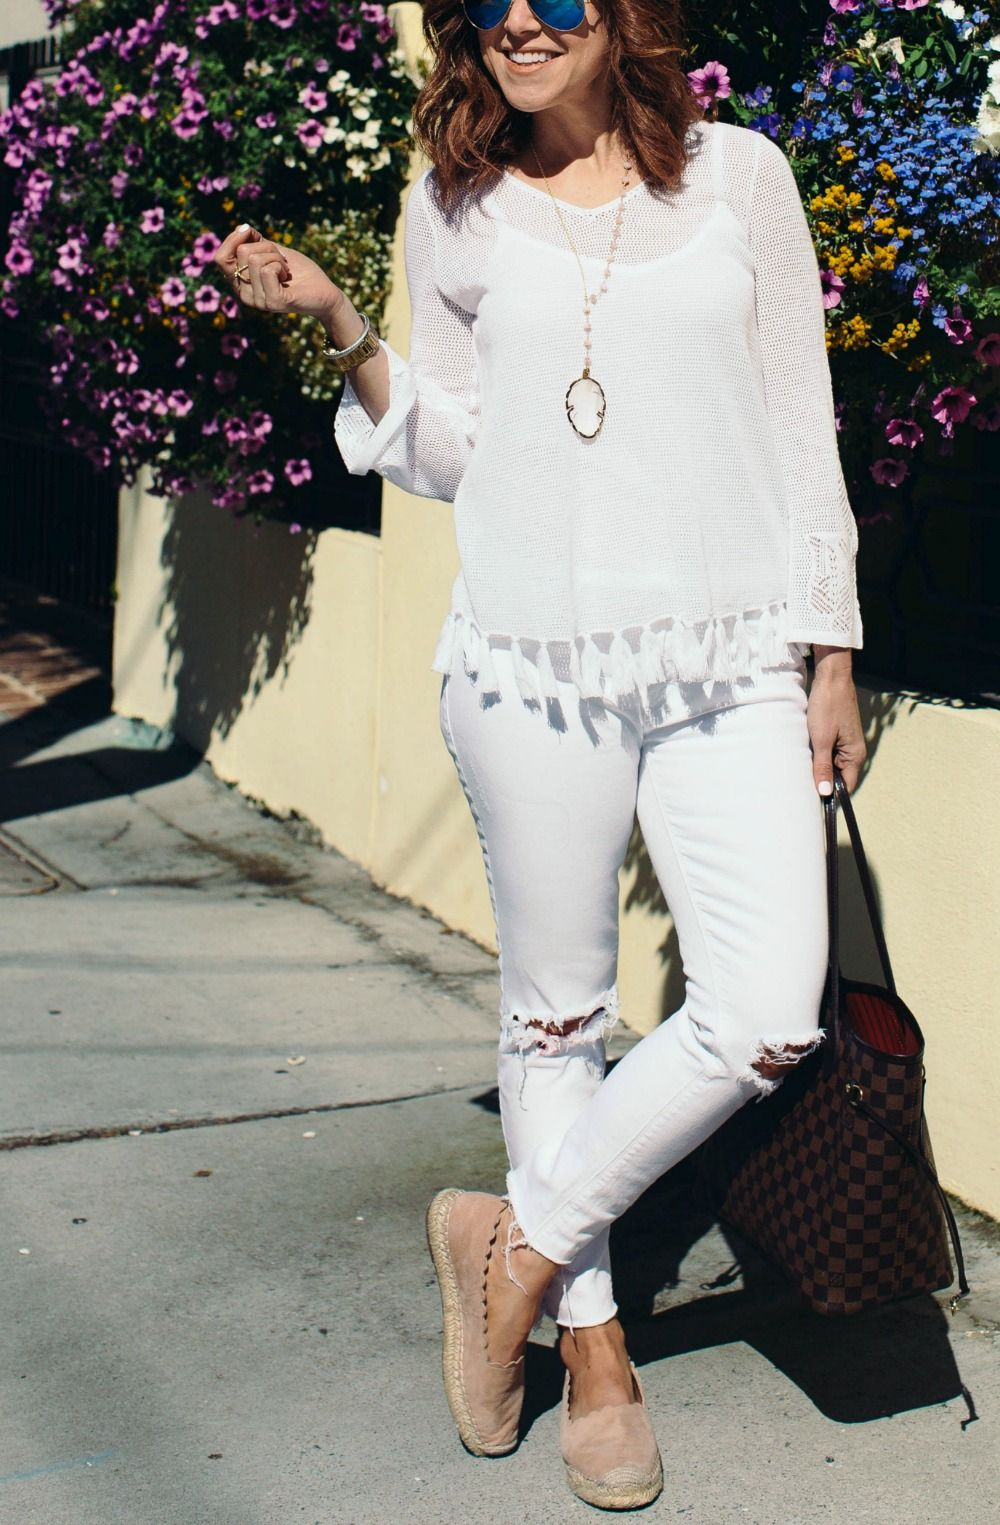 Two Ways to Wear: All-White Outfit   THE MODERN SAVVY, a life & style blog